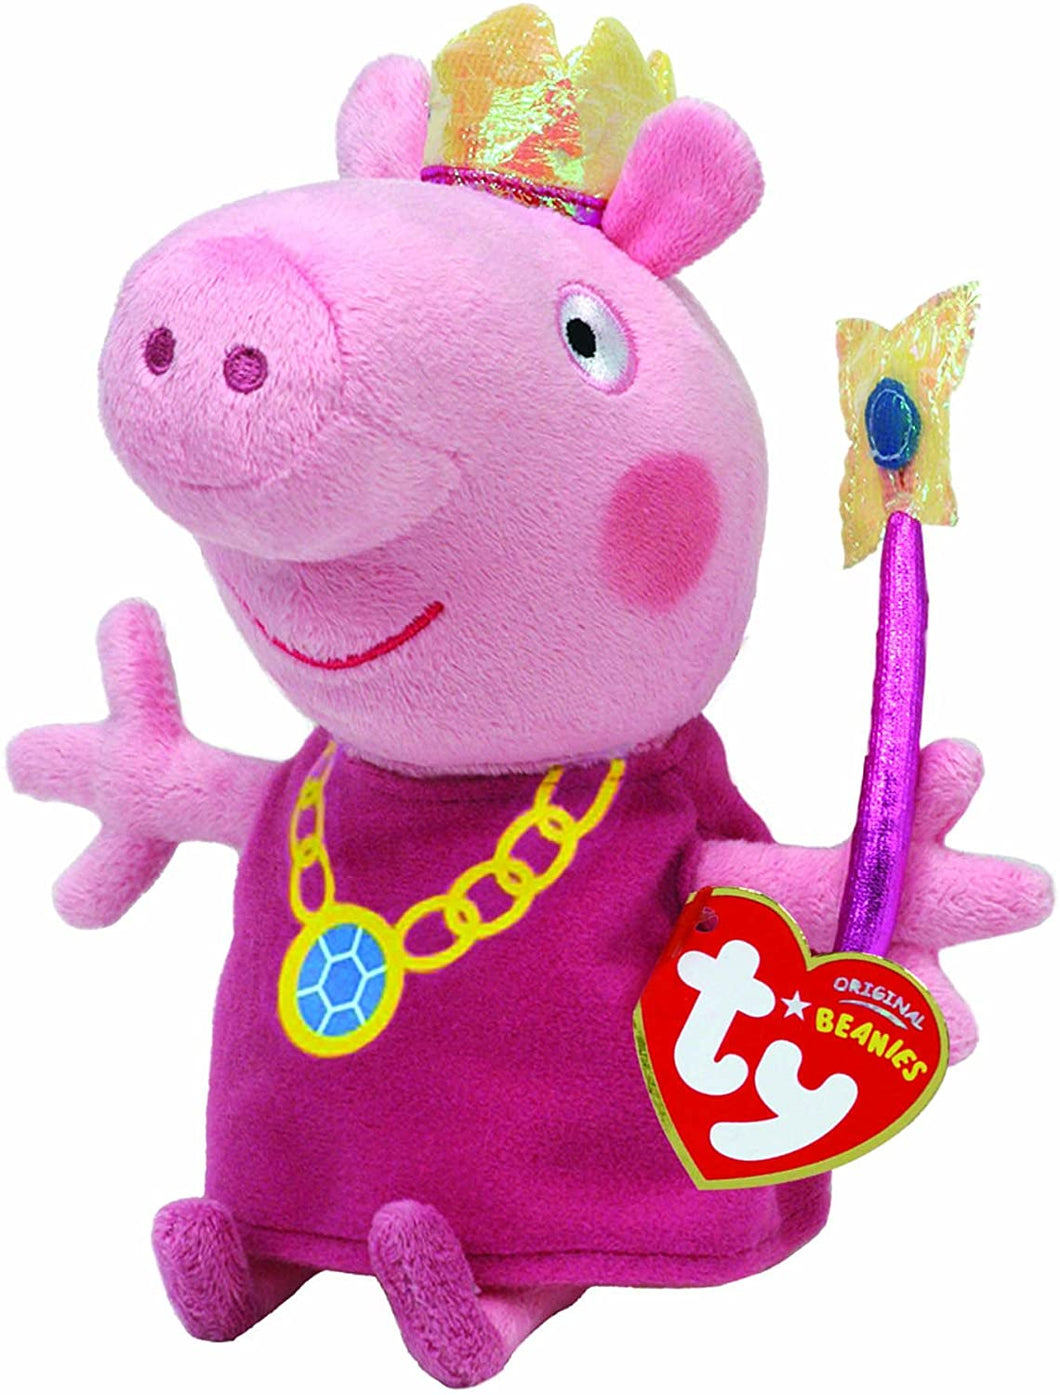 Peppa Pig Princess Peppa Beanie Baby The Bubble Room Toy Store Dublin